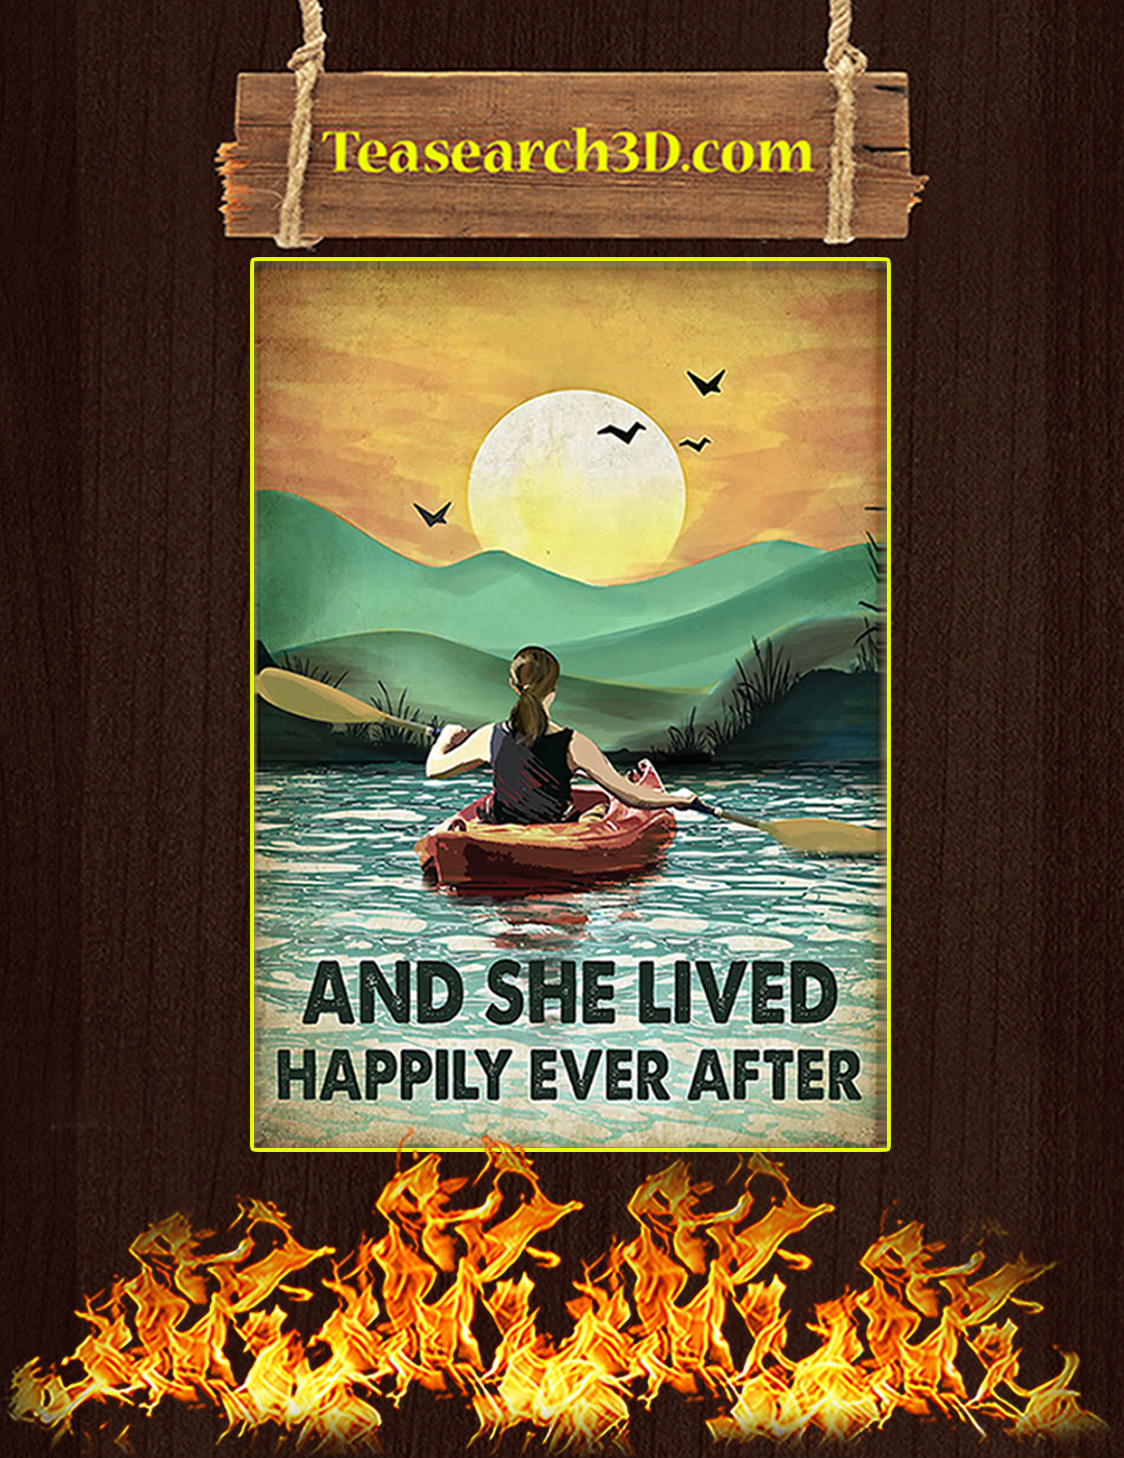 Rowing and she lived happily ever after poster A3